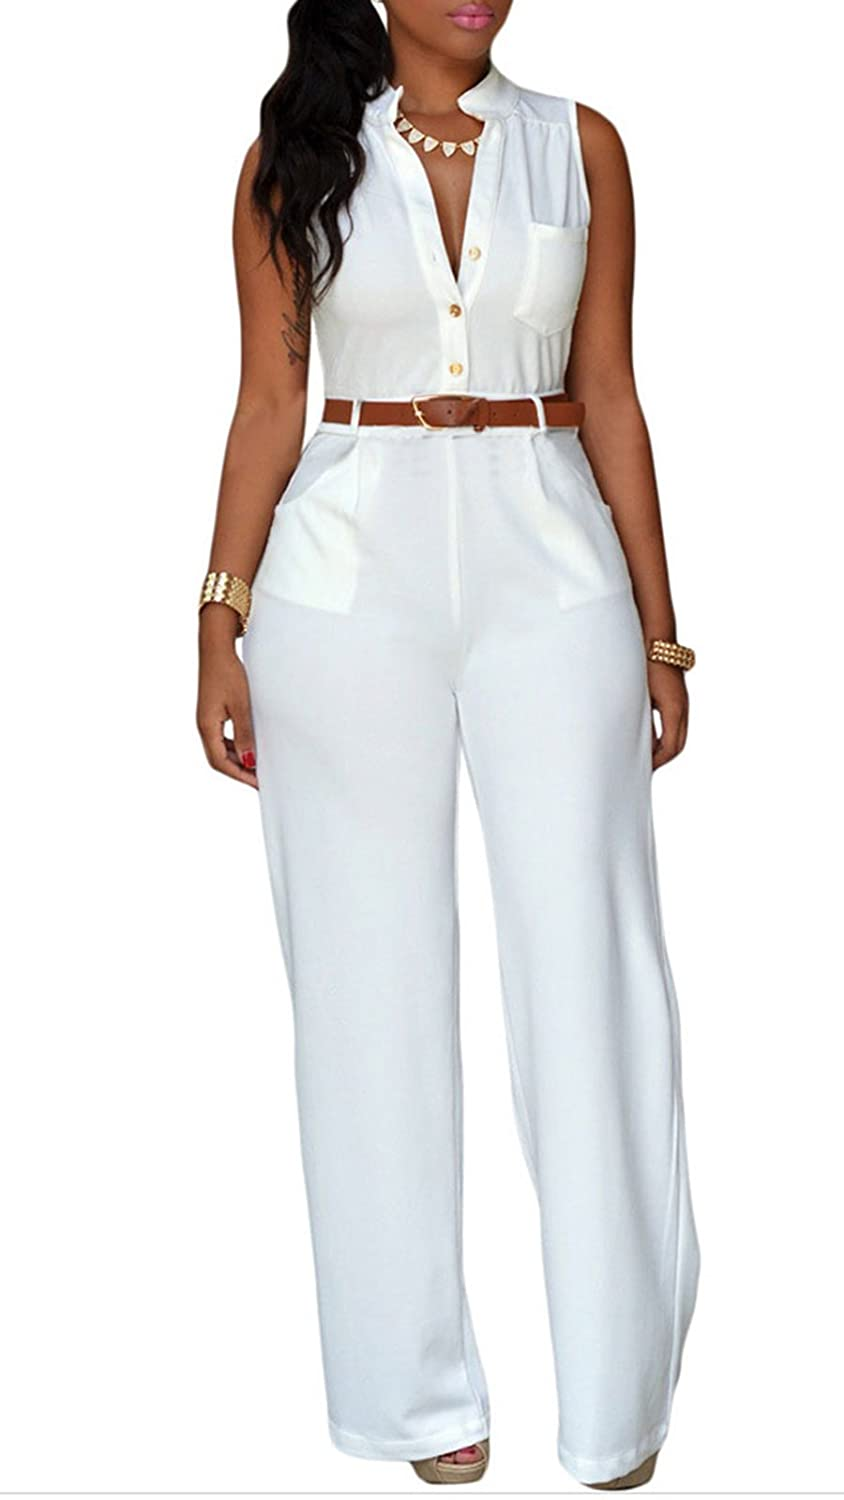 Booty Gal Women's Sexy Belted Wide Leg Jumpsuit